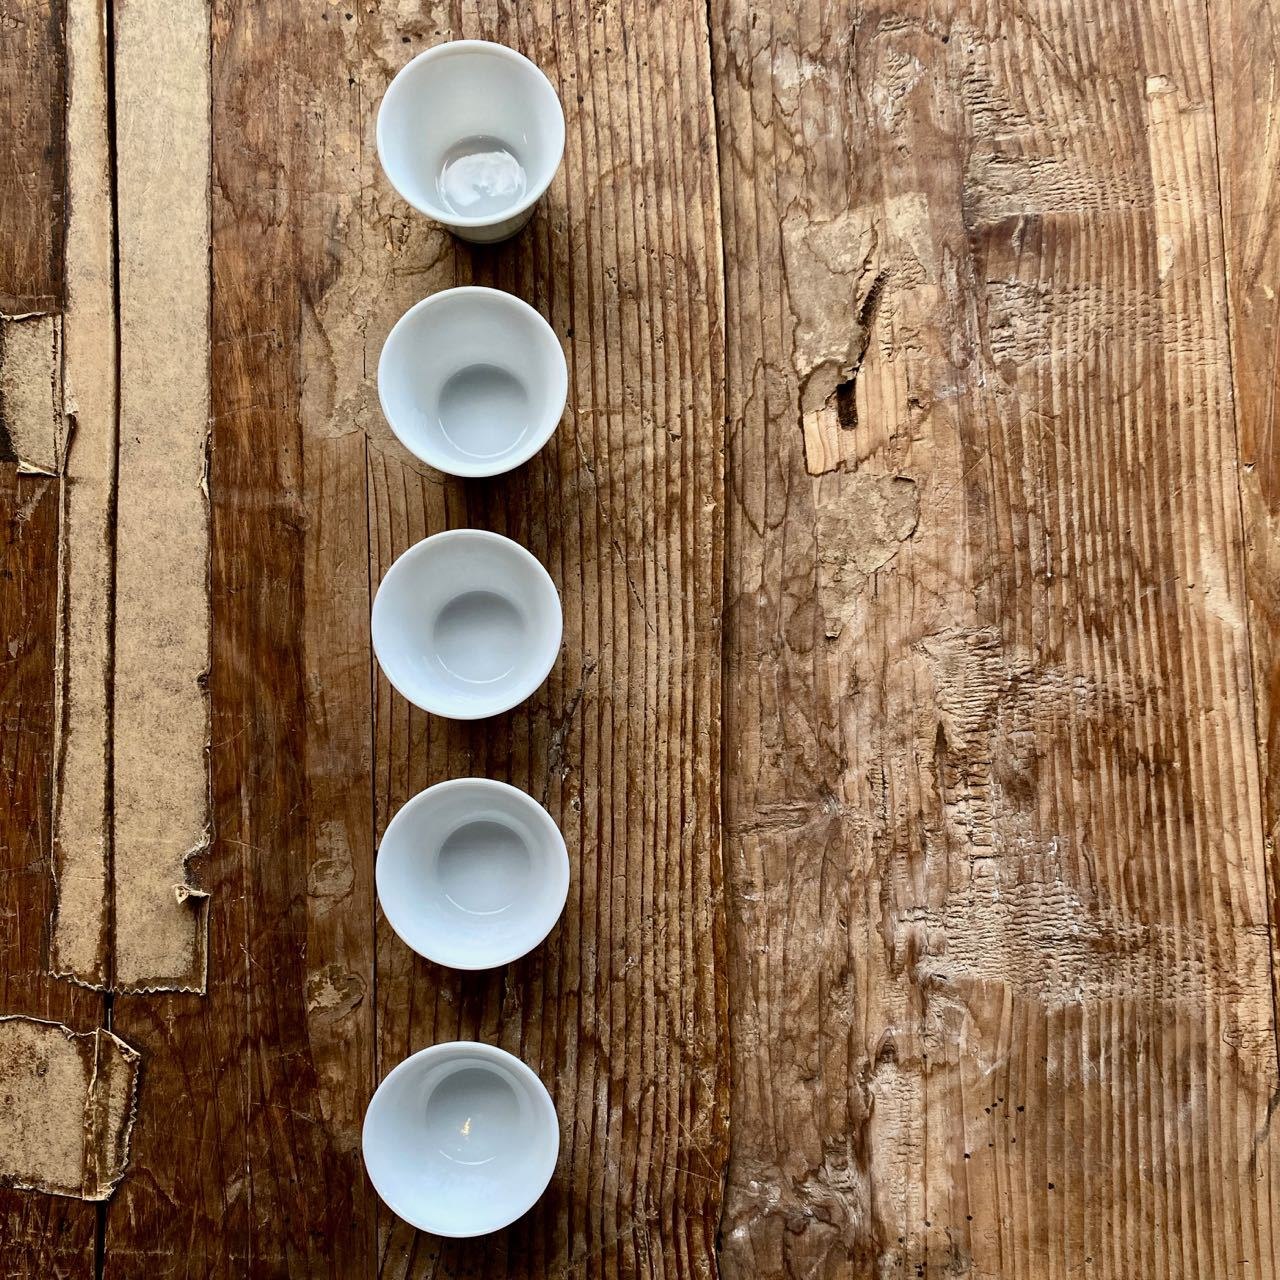 JAPANESE TASTING CUPS, White, 20ml - O-FIVE RARE TEA BAR